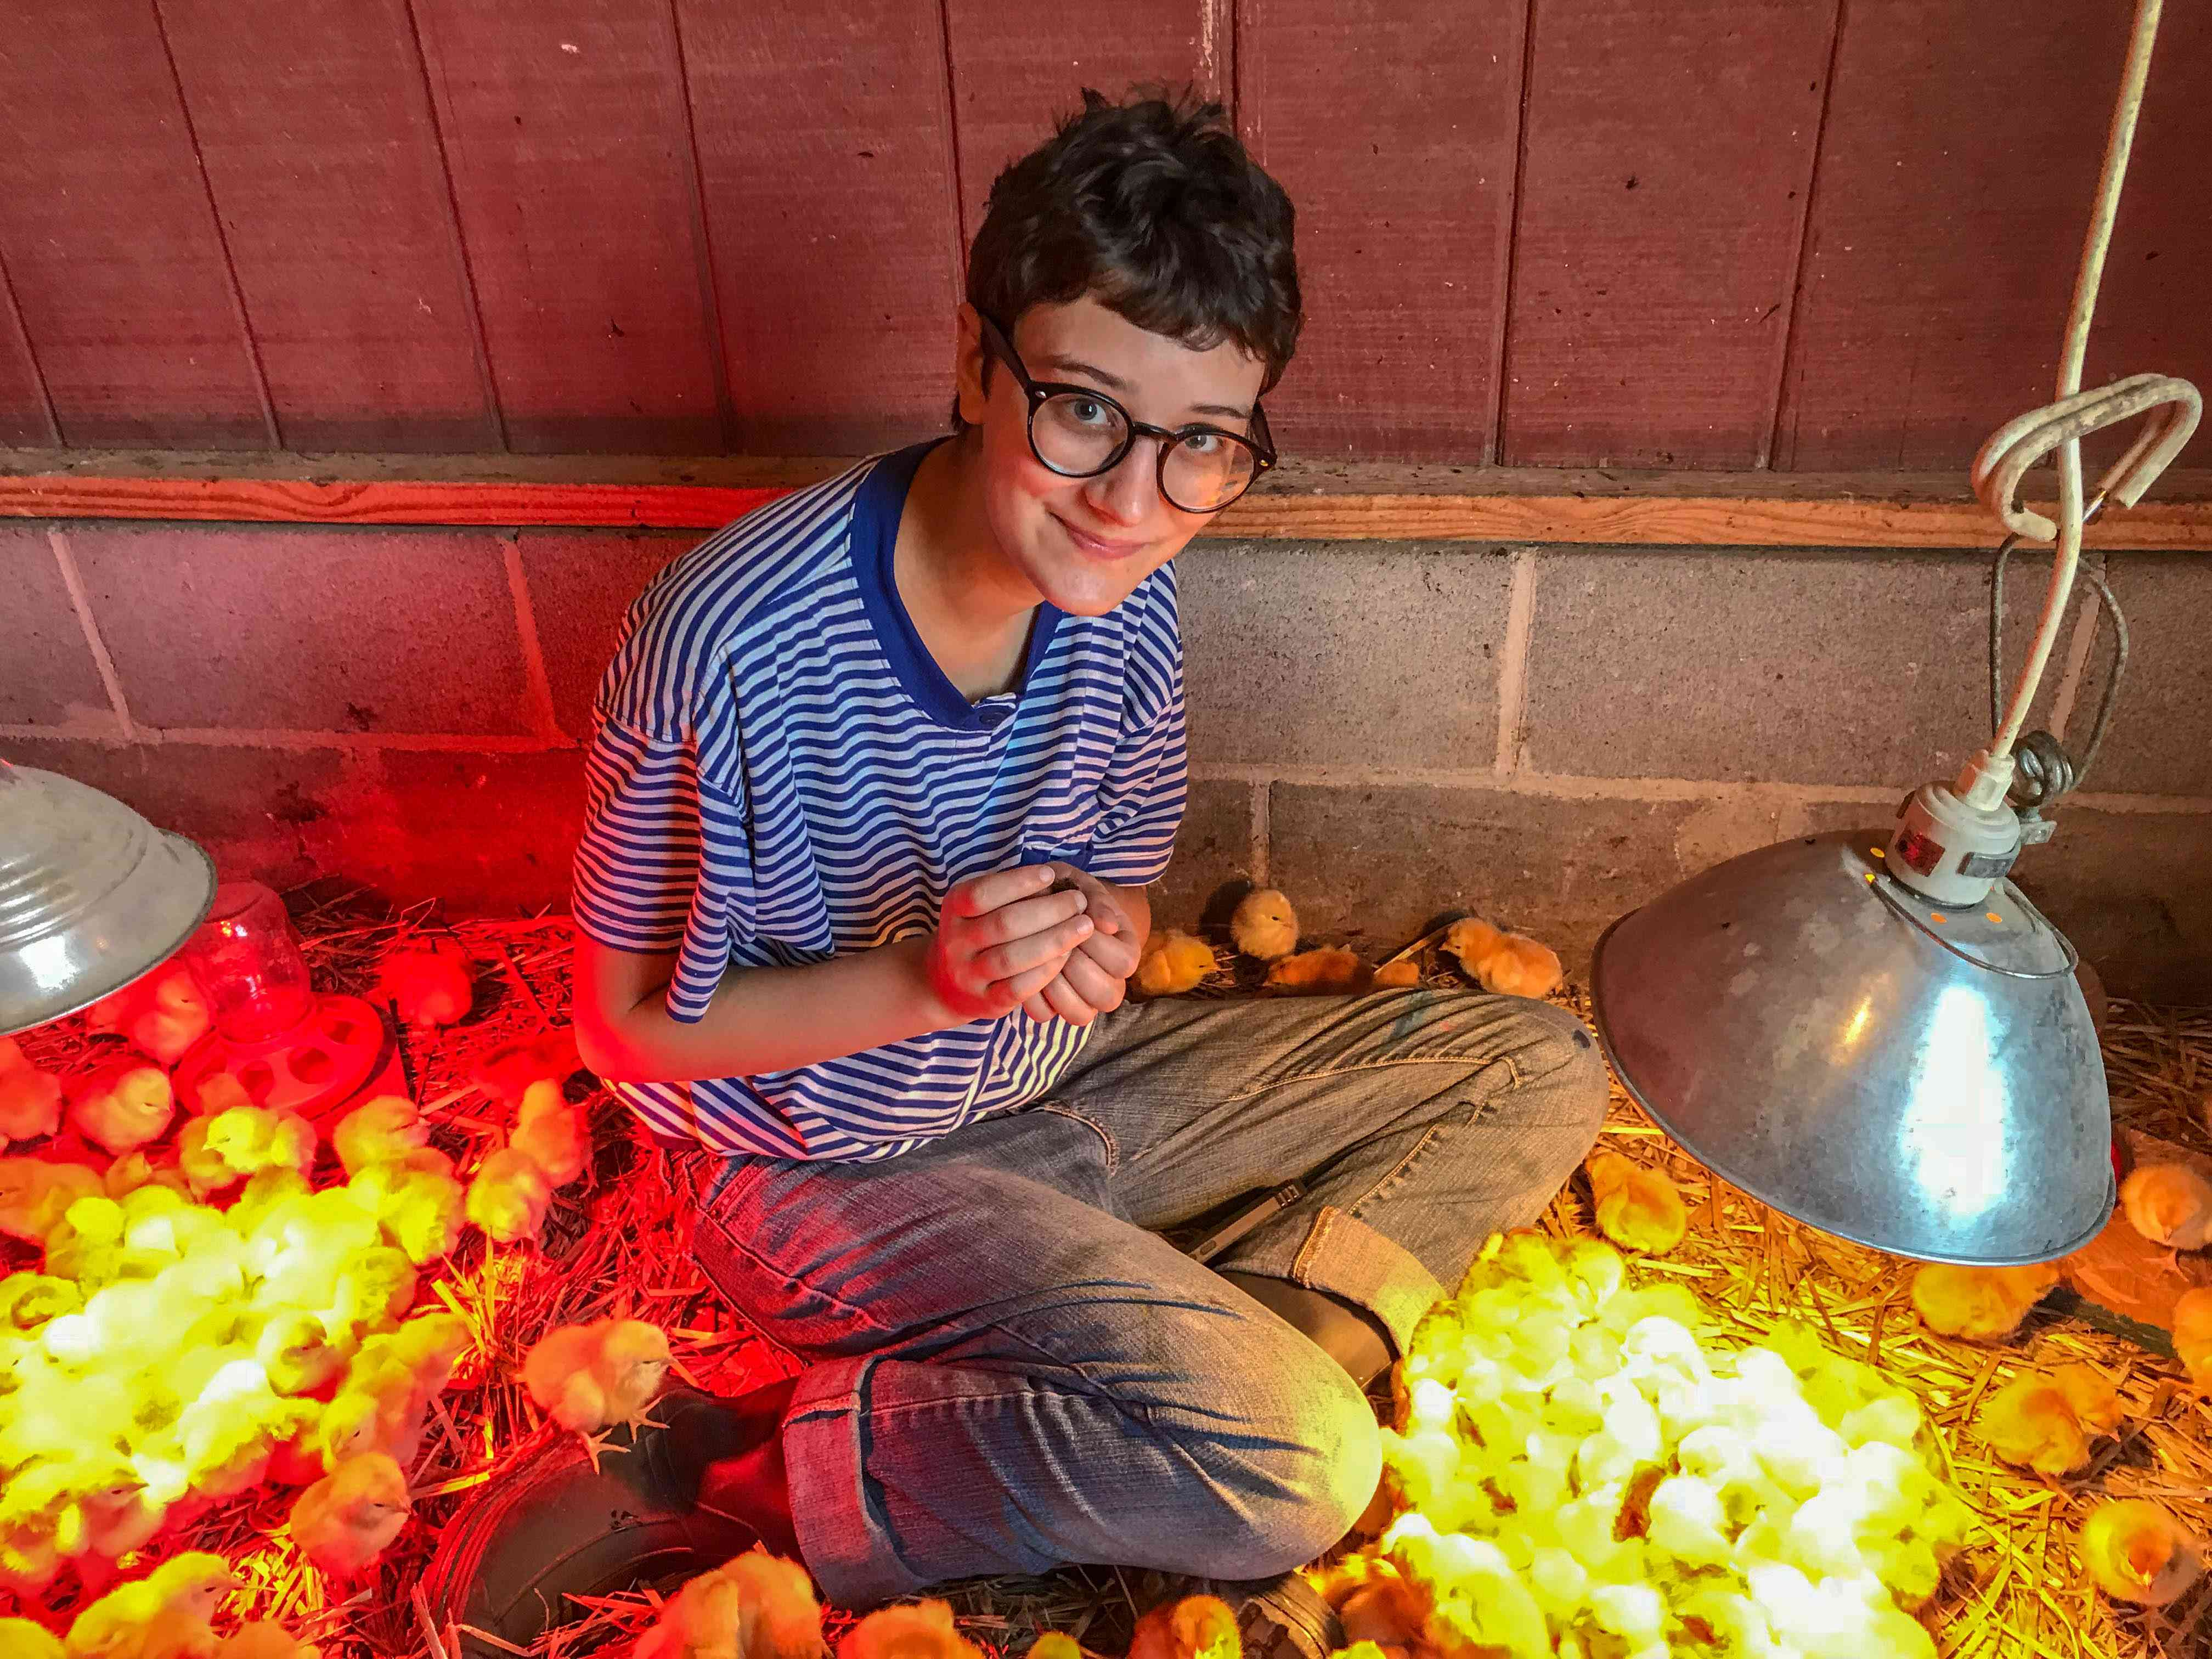 Student Noa Everet is surrounded by baby chicks.